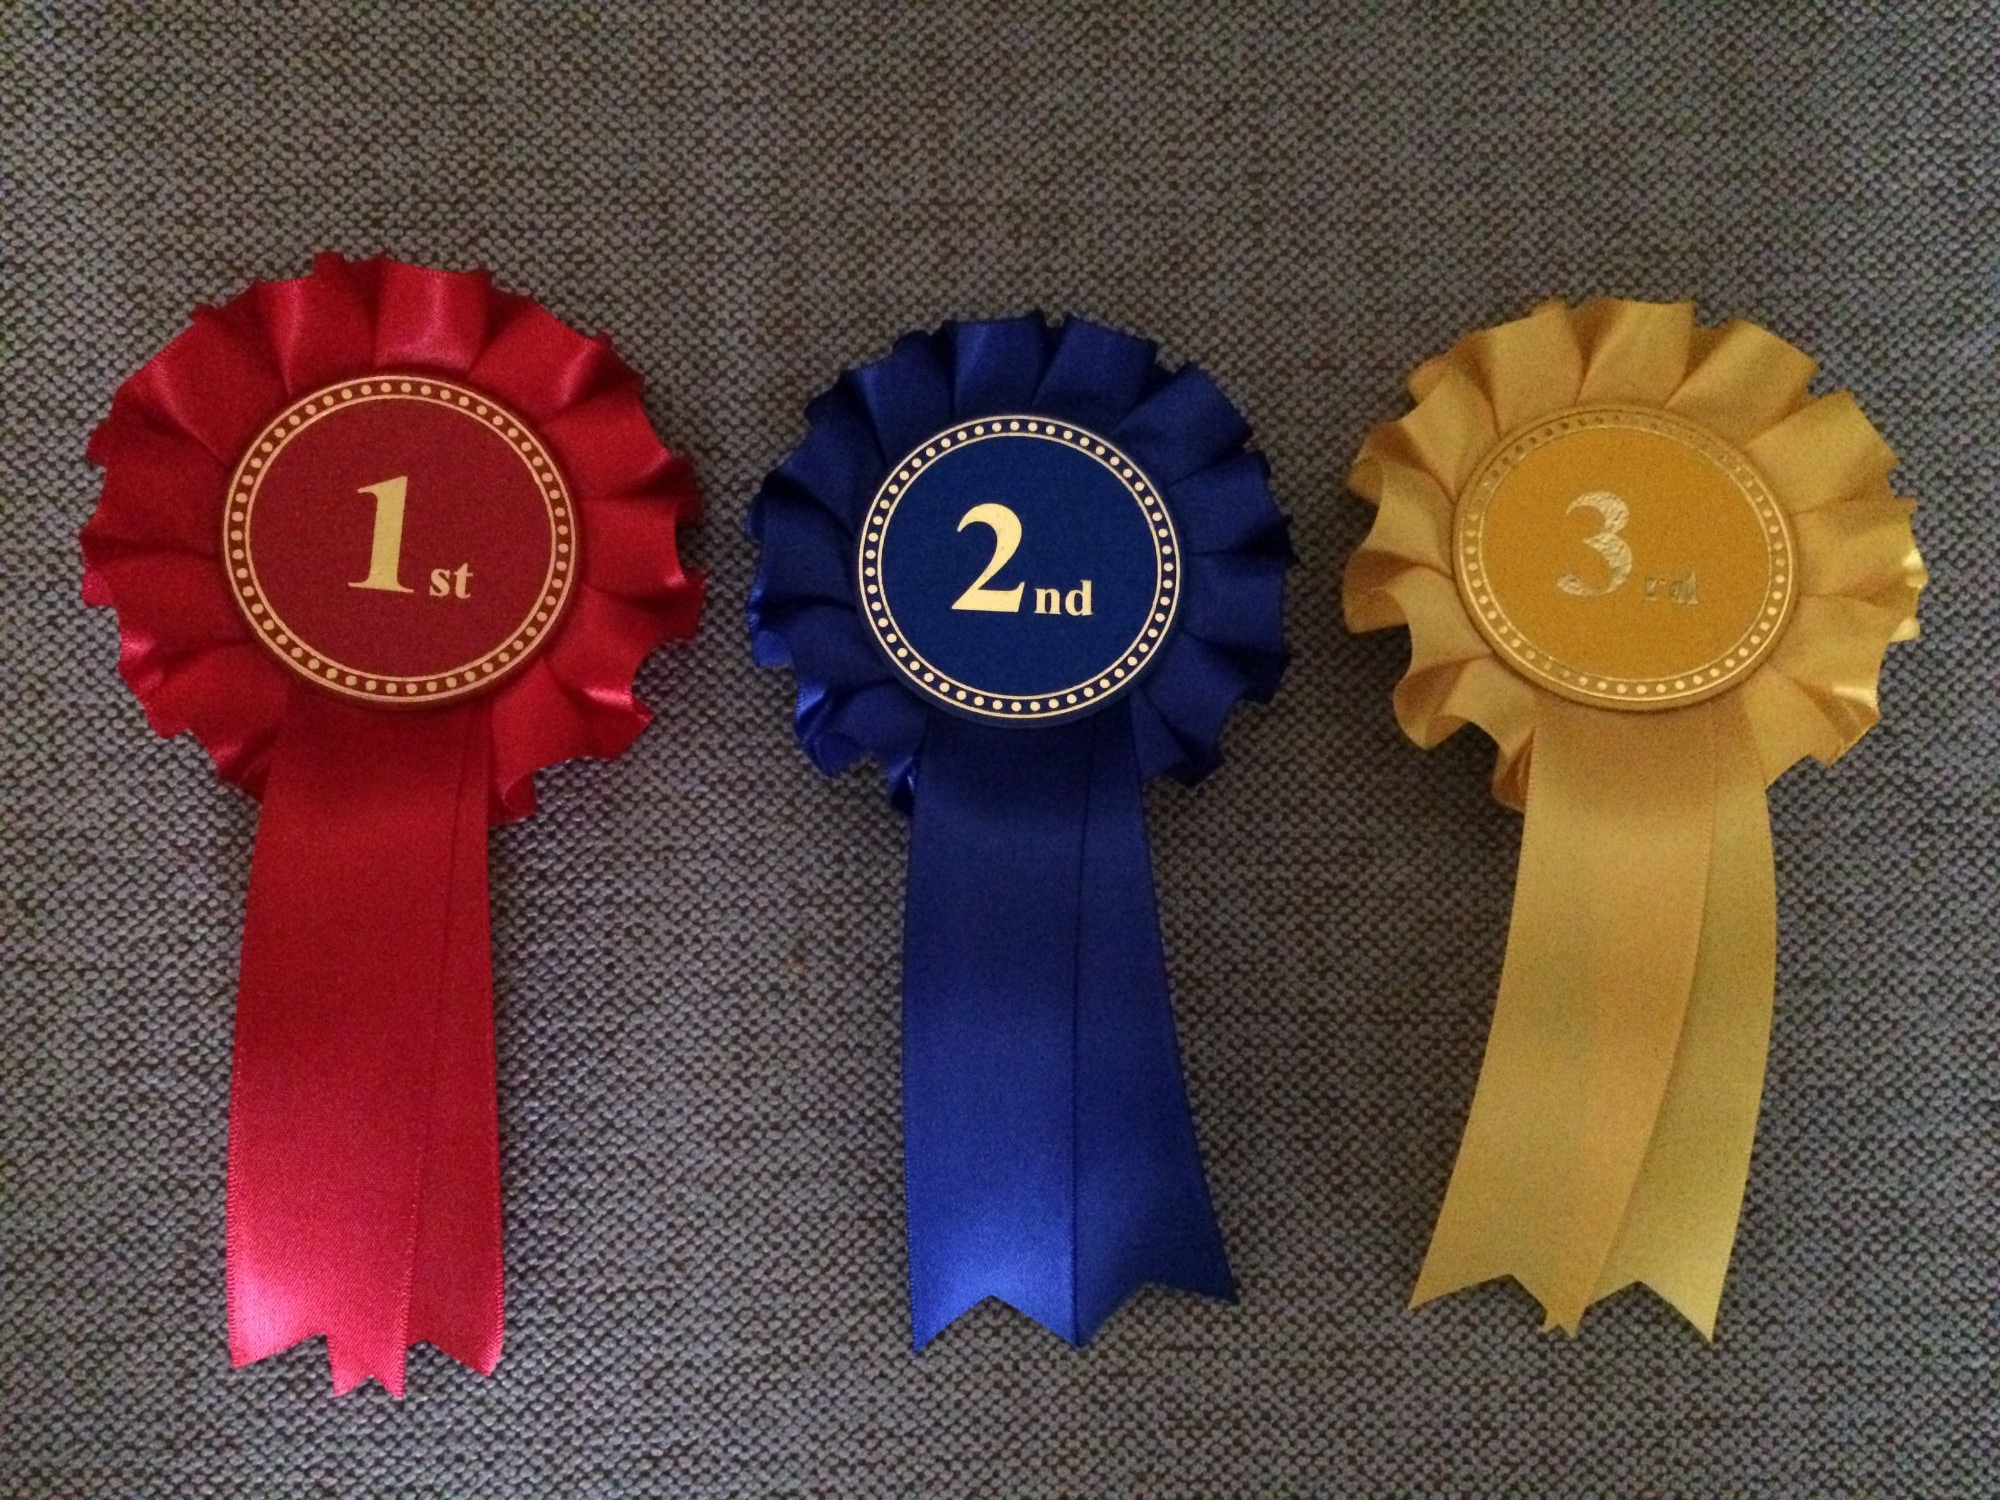 Rocking Horse Rosettes in a set of three, first, second & third prizes! in red, blue & yellow.